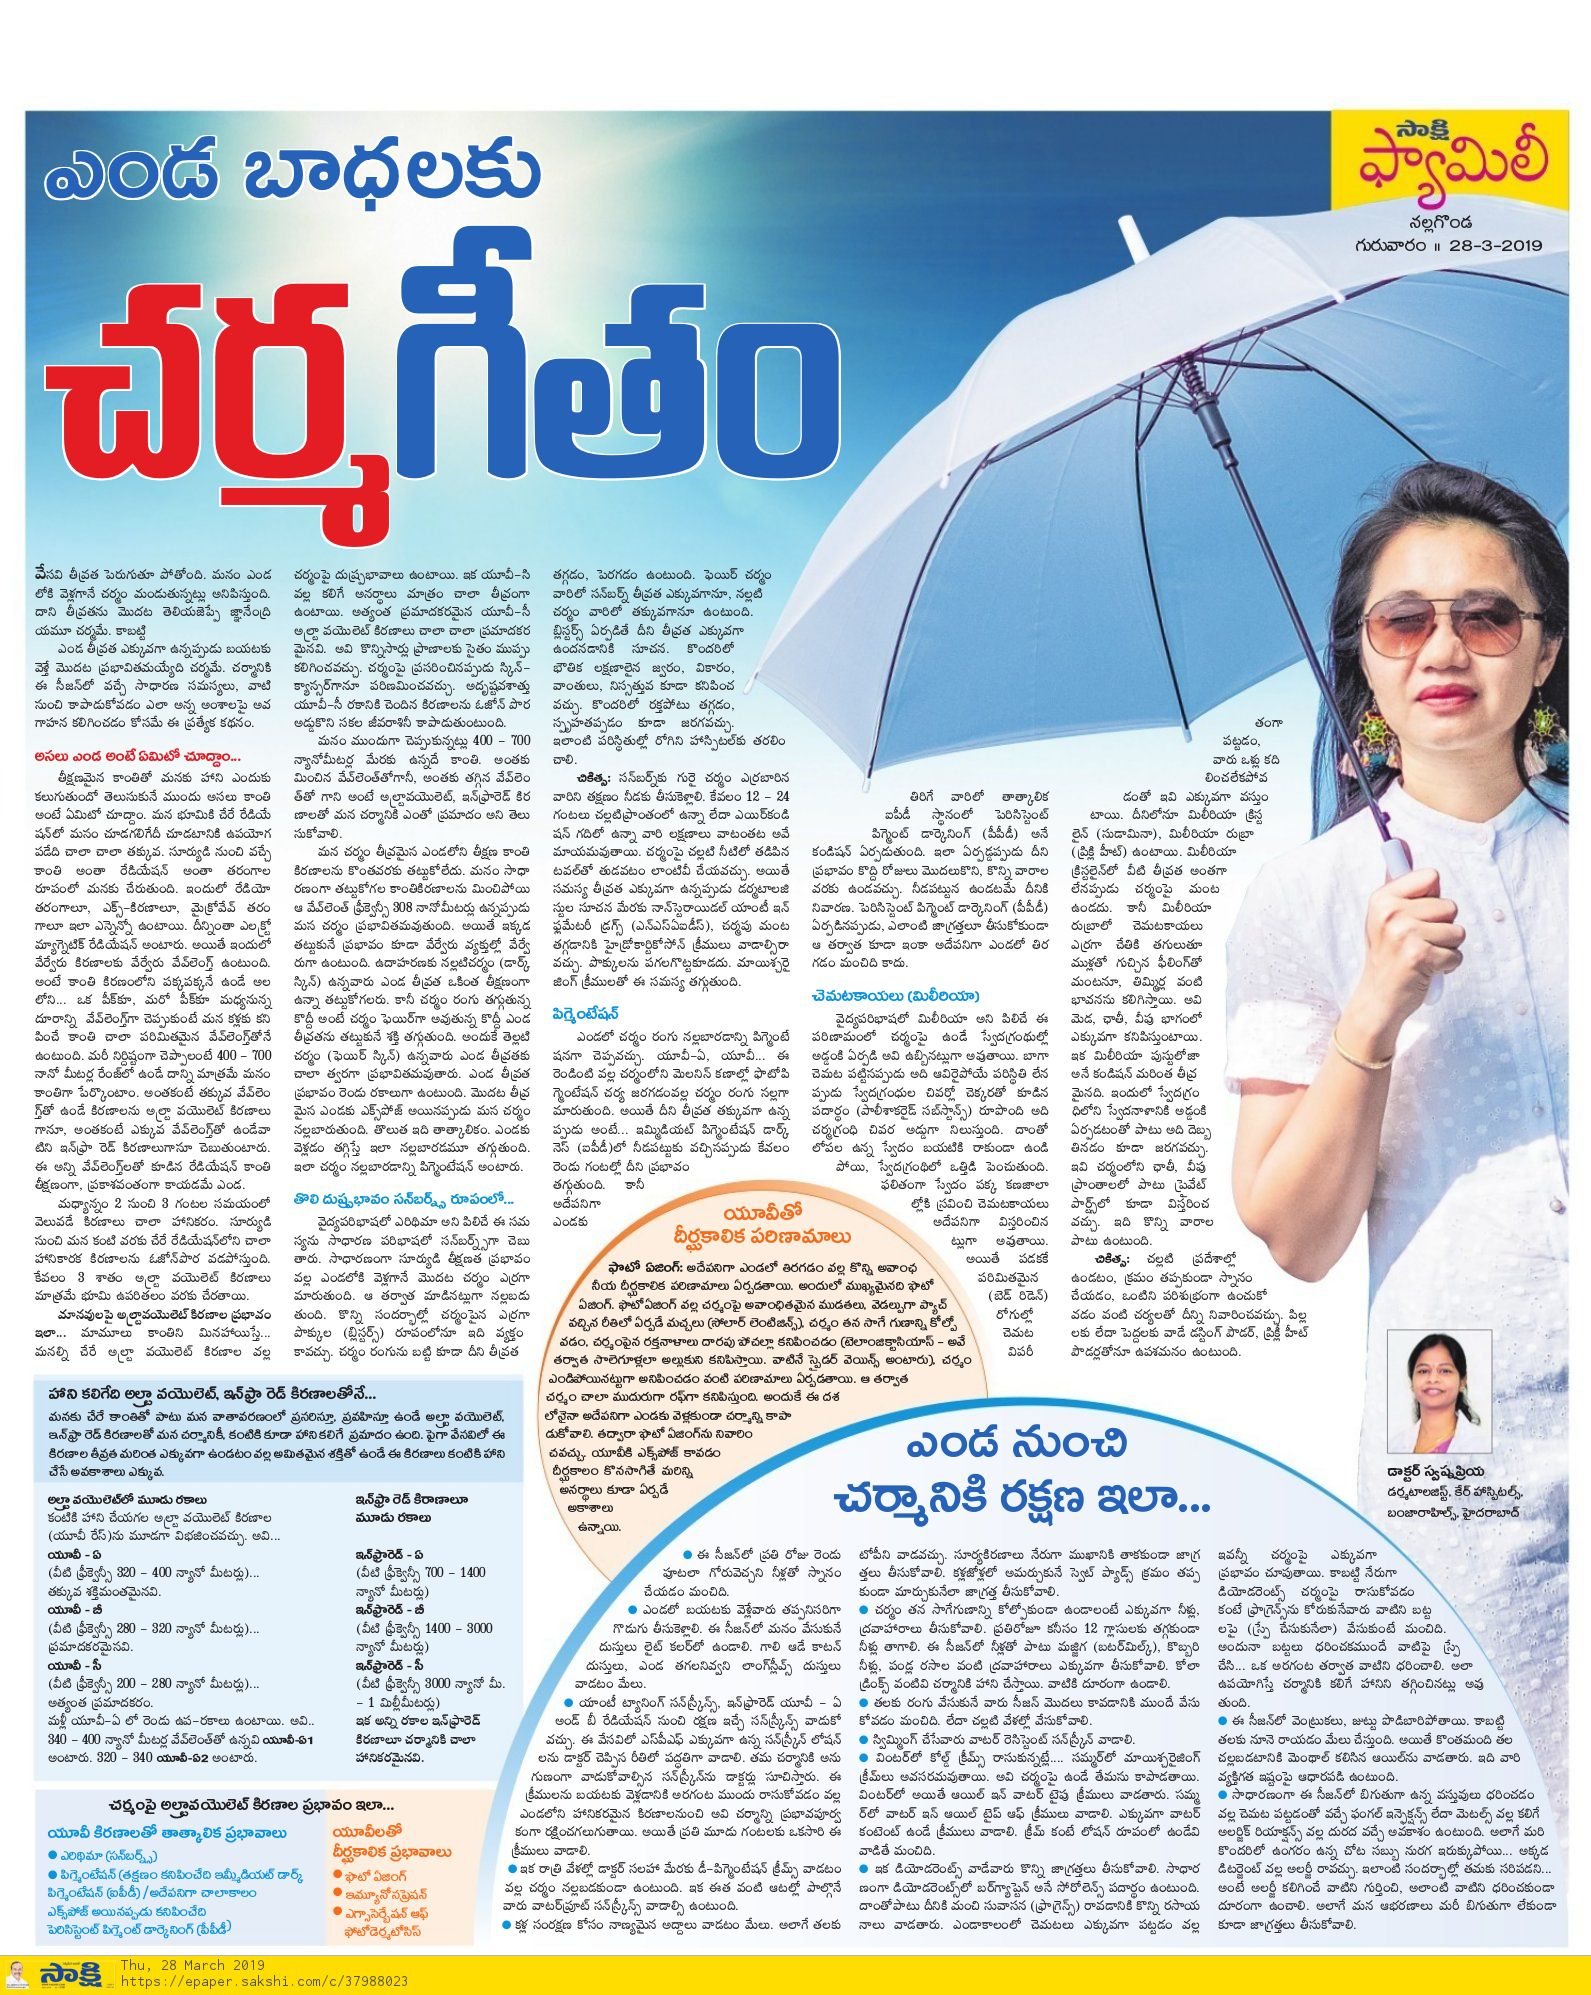 tips for skin care in summer by Dr Swapna priya, one of the best dermatologist in hyderabad